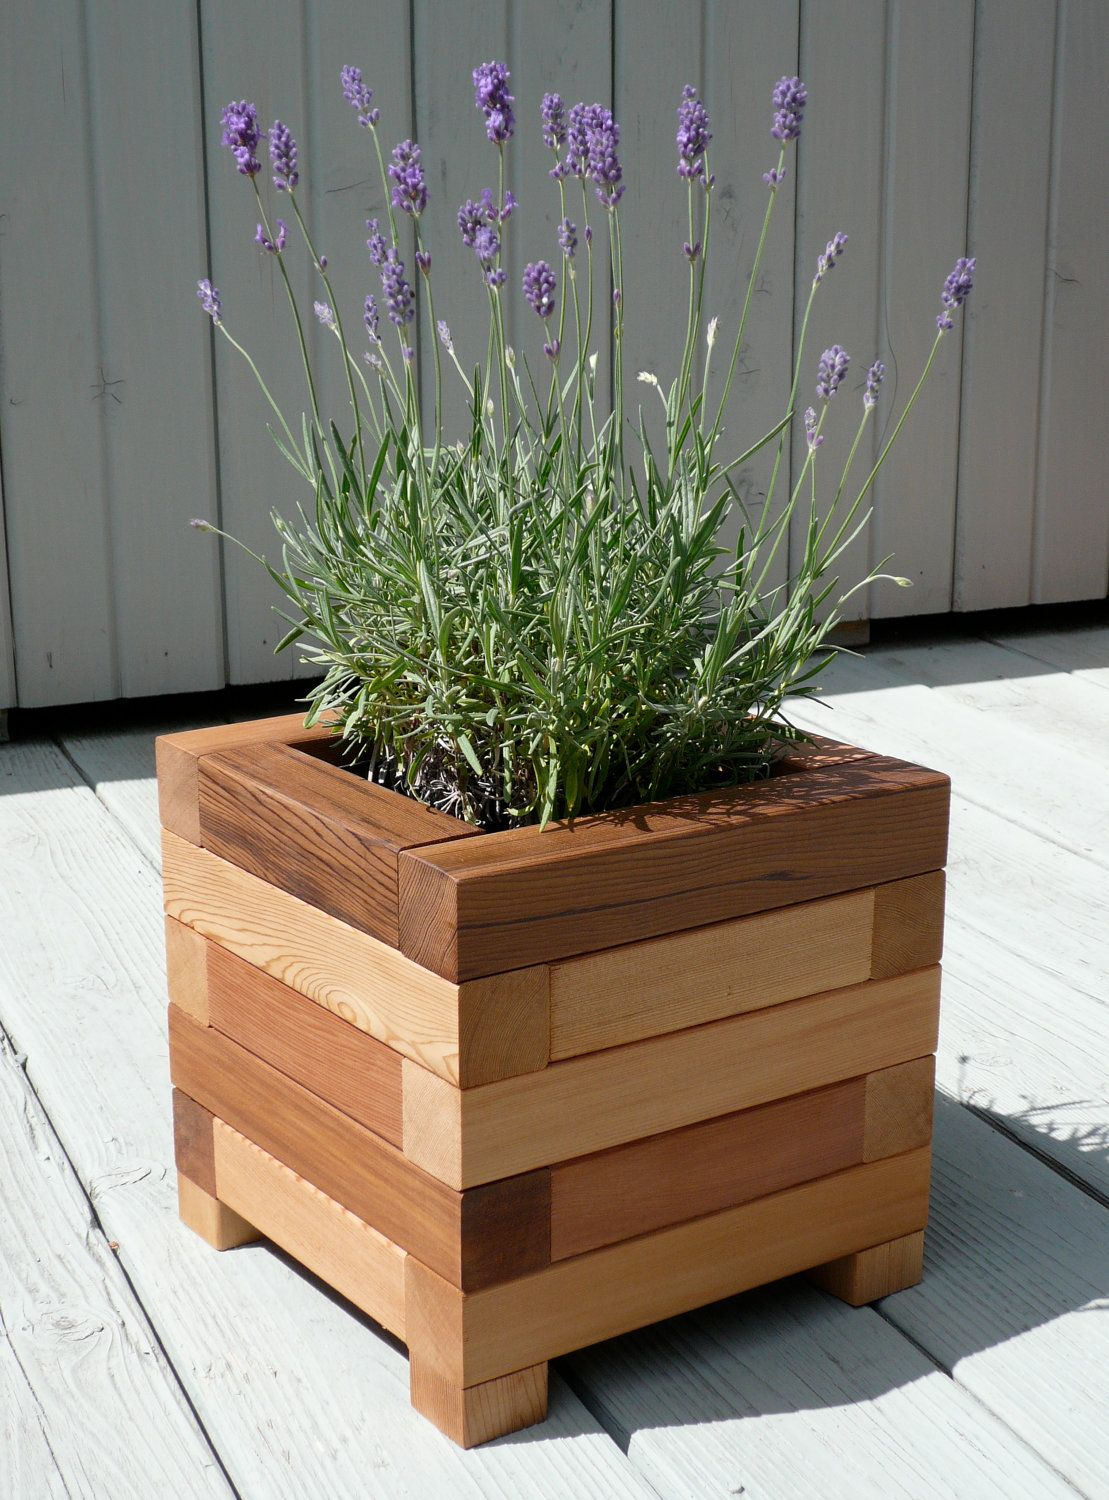 Square Red Cedar Planter Box by BENTwoodwork on Etsy. 29